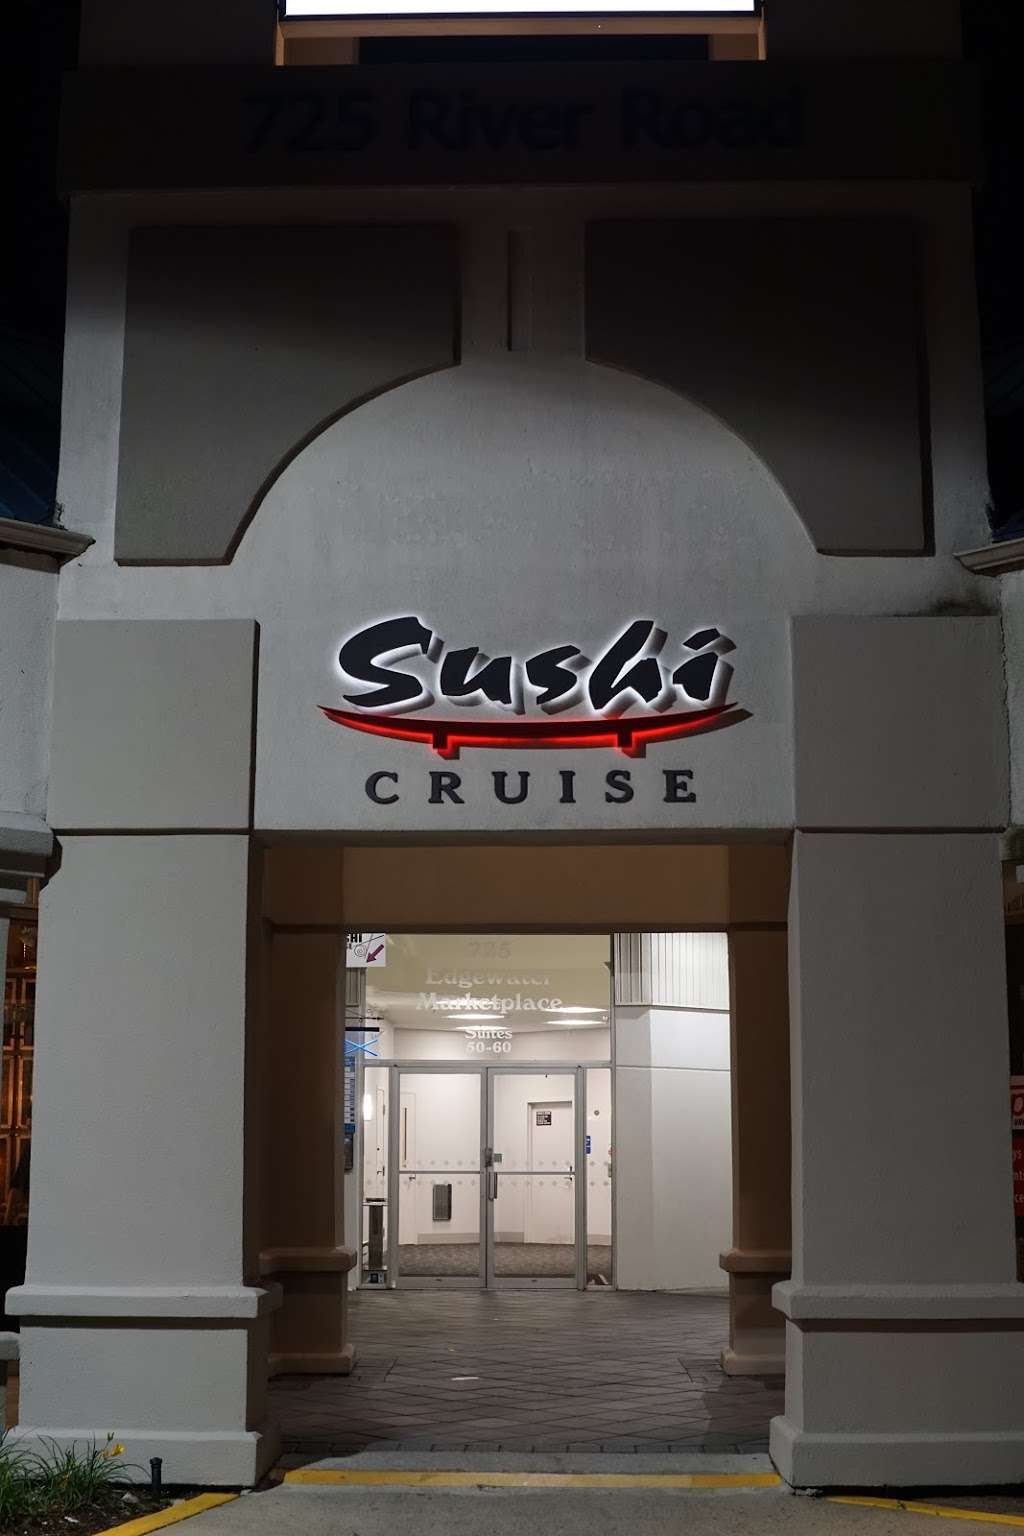 Sushi Cruise - restaurant  | Photo 1 of 10 | Address: 725 River Rd #51, Edgewater, NJ 07020, USA | Phone: (201) 313-3611